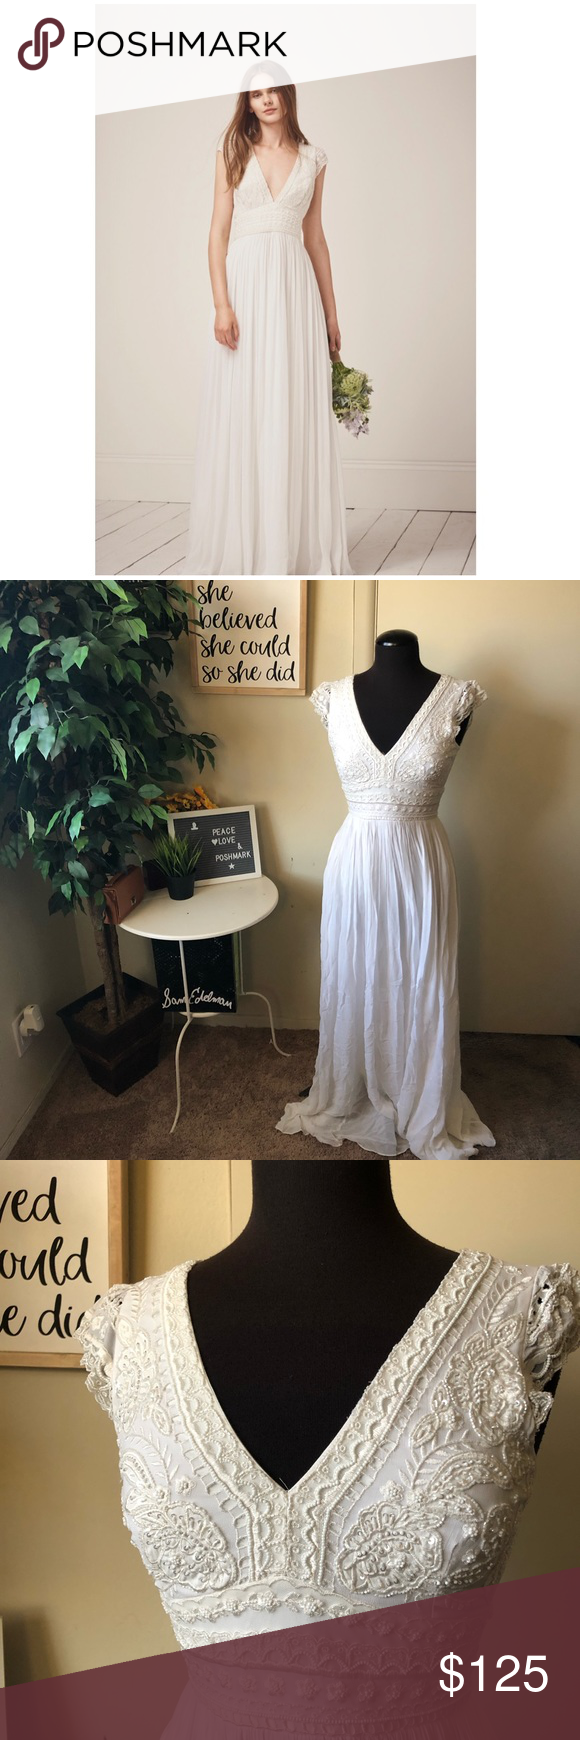 c1f149dc8f1c Cap Sleeves · French Connection special occasion wedding dress The Palmero  brings together a romantic, draped shape and